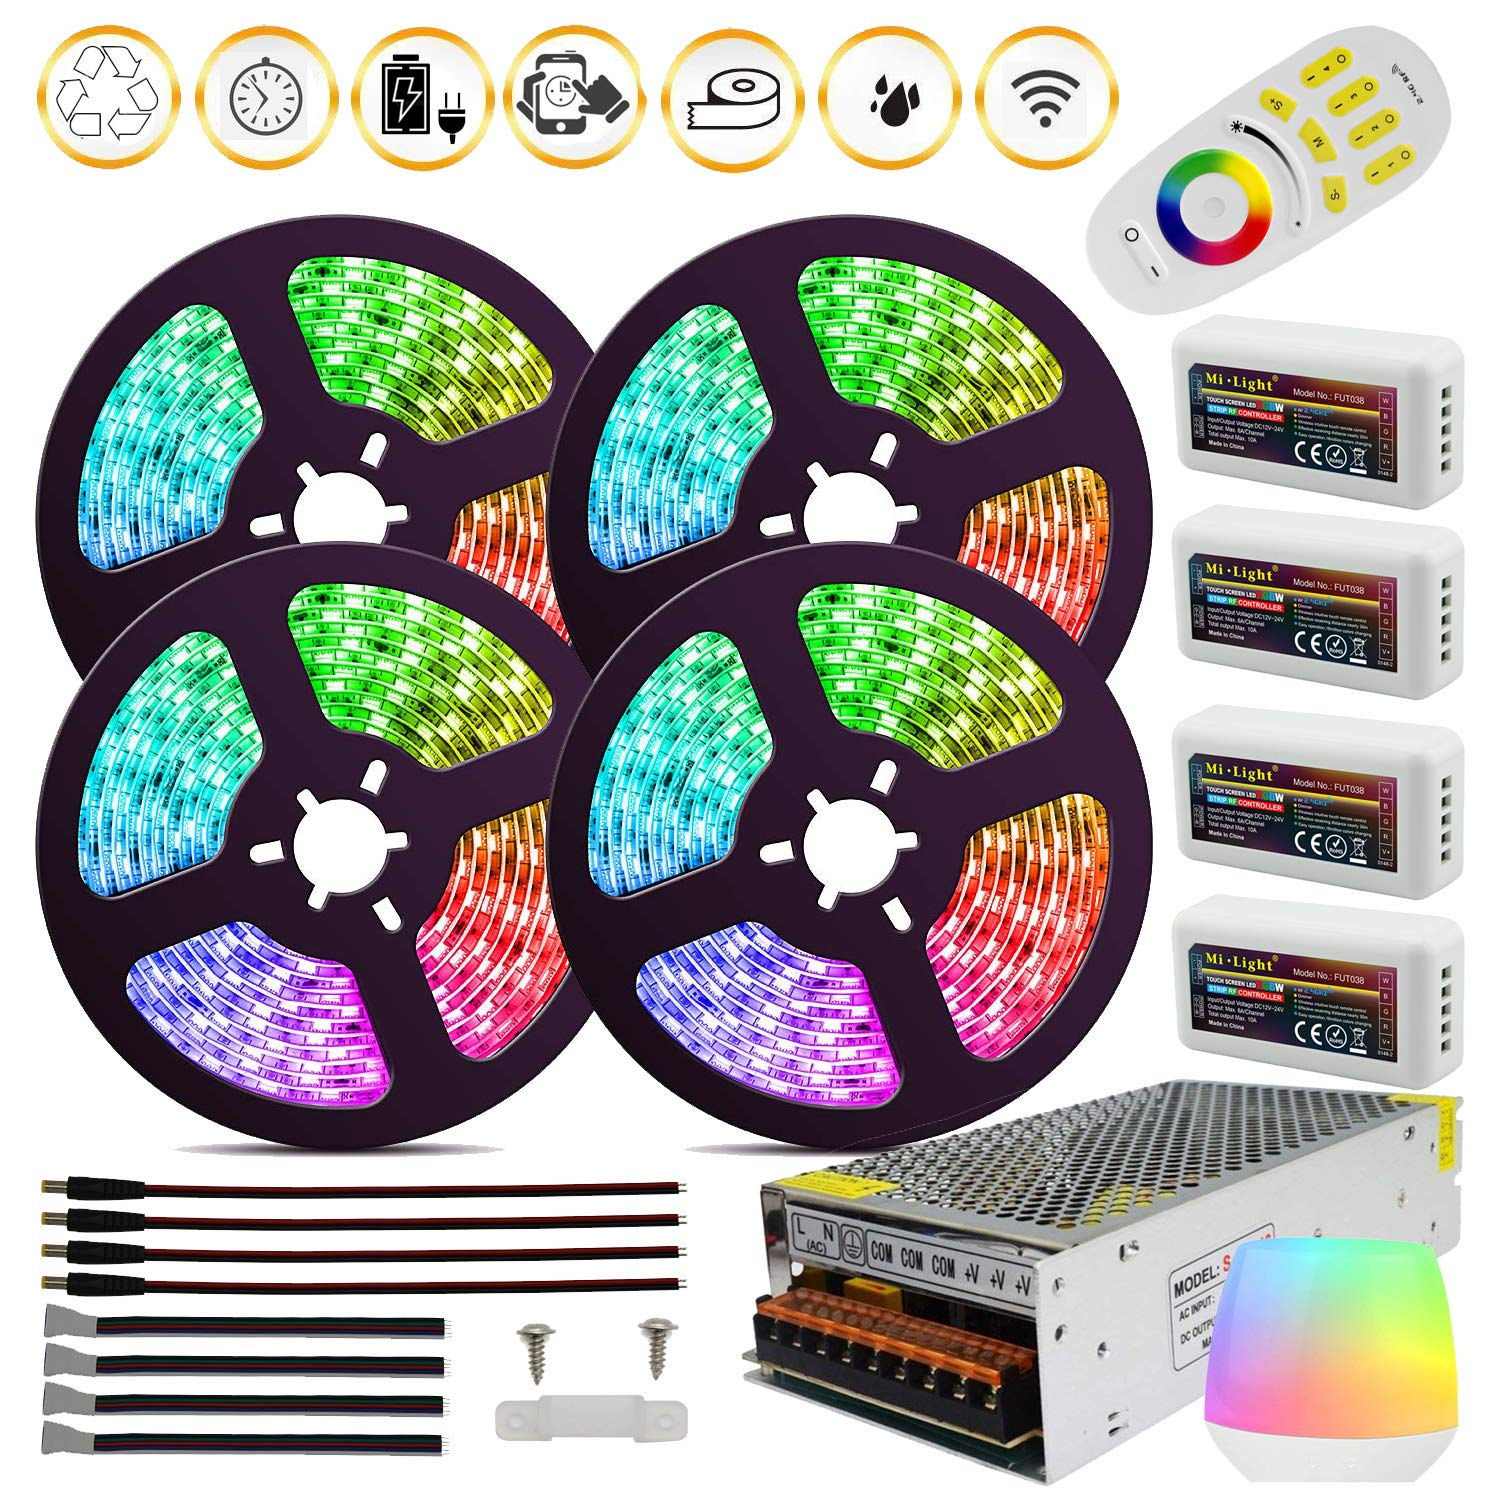 DC12V RGBW SMD5050 Led Strip Light RGB+White LED Tape 60leds/m + Mi-Light Controllers + 20A Power Supply for Home Decoration (RGBW IP65, 5mx4 Rolls Strips Kit, with 10x Fixed Buckles)